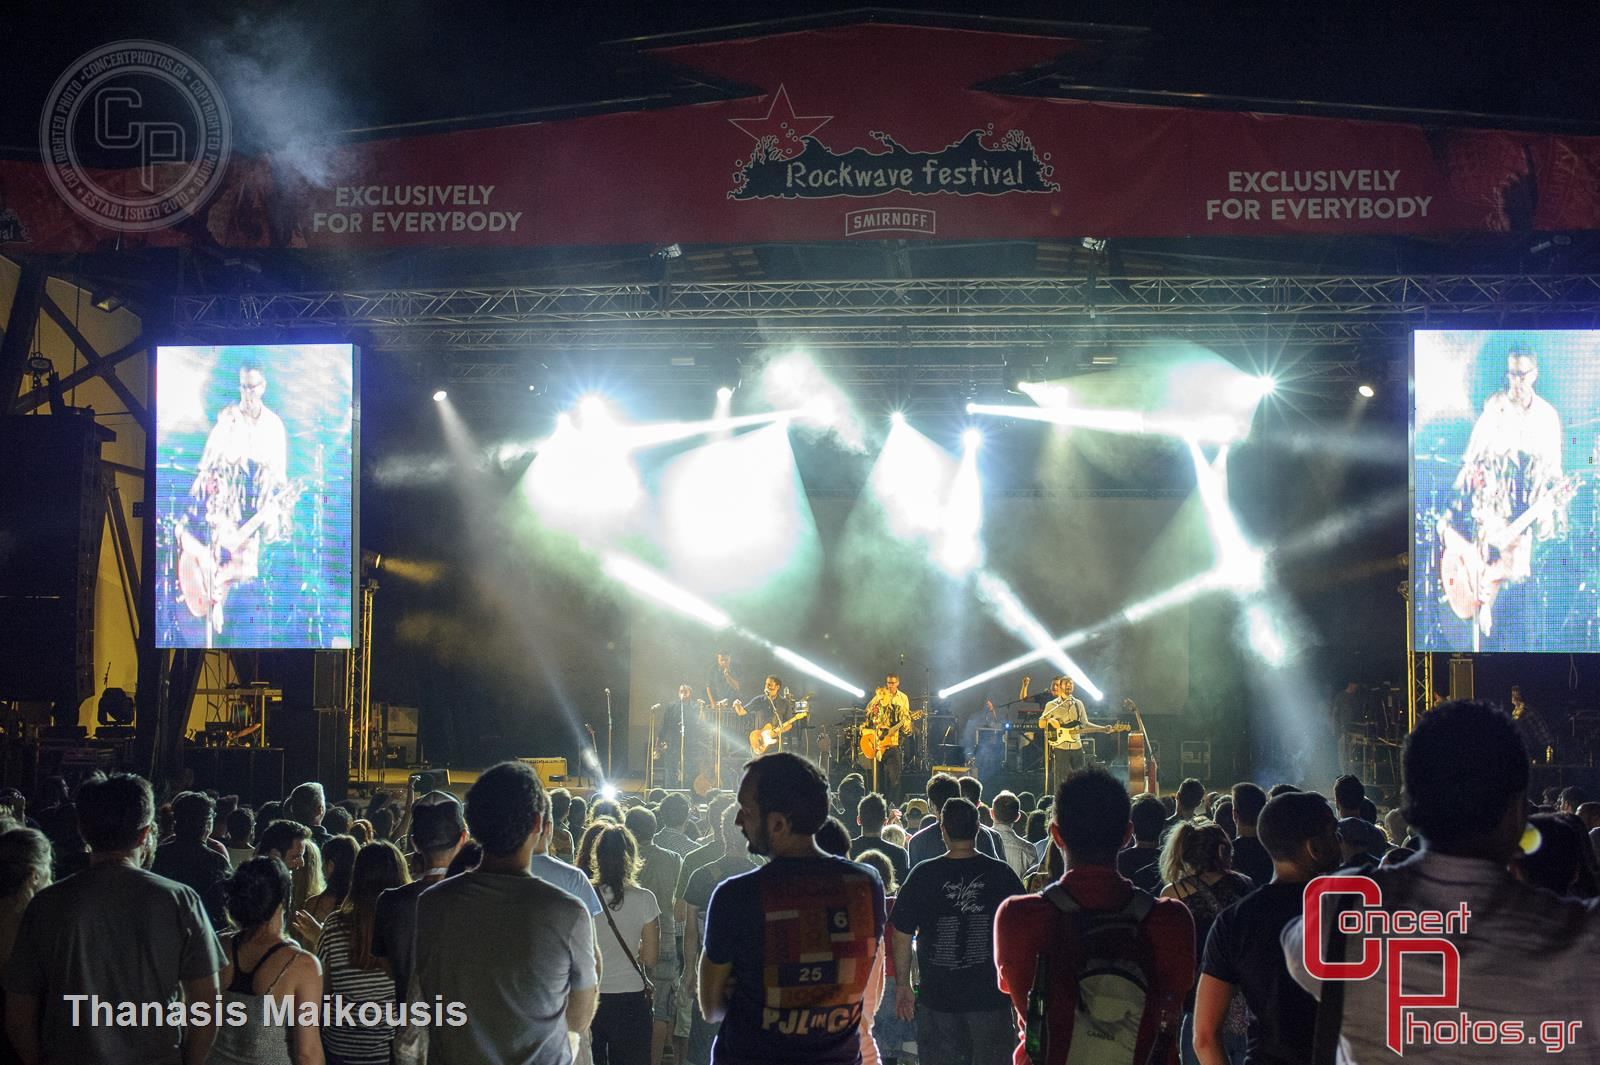 Rockwave 2014 -Rockwave 2014 - Day 2 photographer: Thanasis Maikousis - Rockwave-2014-190